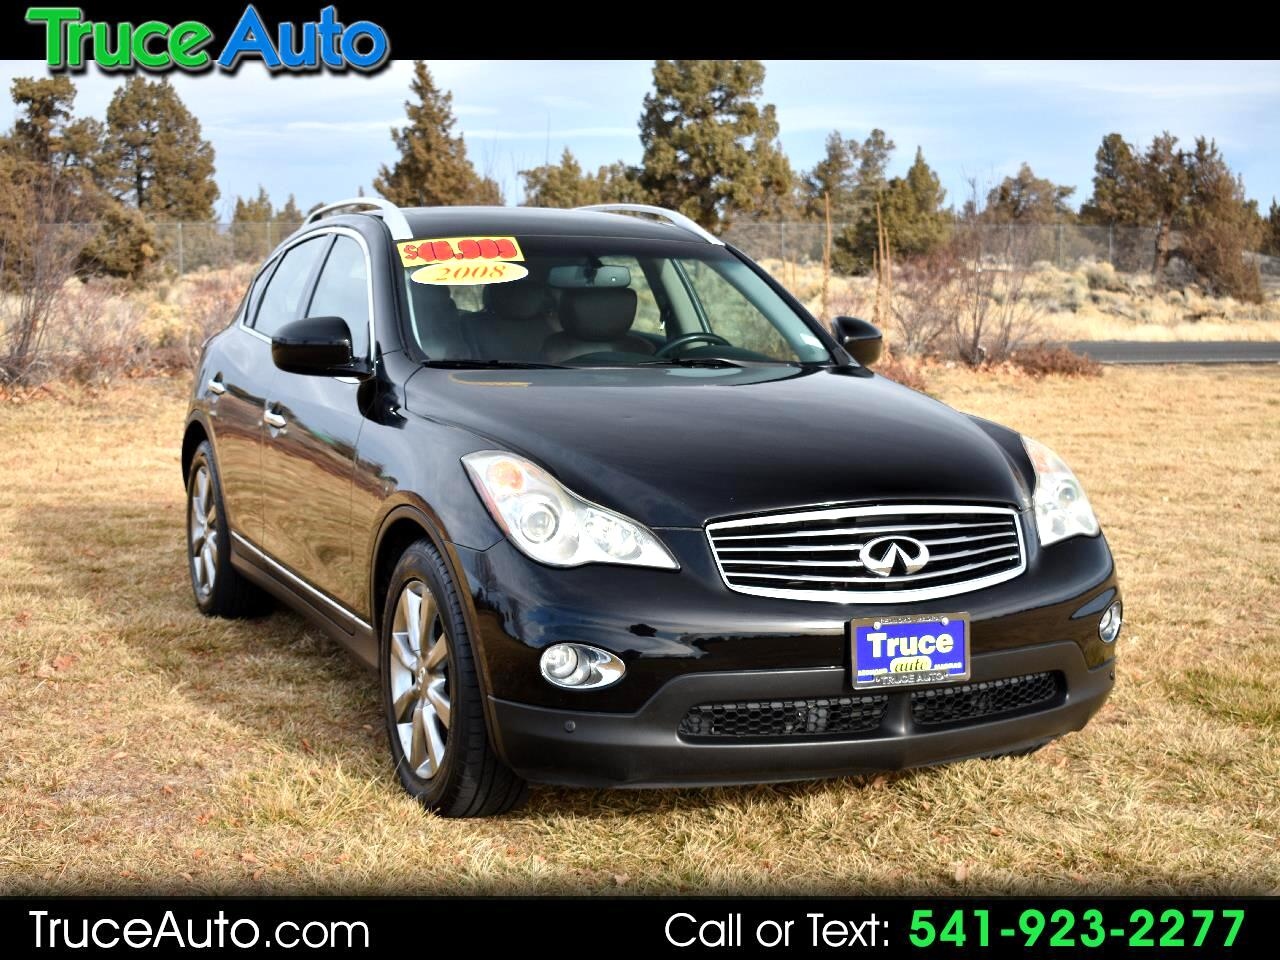 2008 Infiniti EX35 Journey AWD ***LOW MILE***